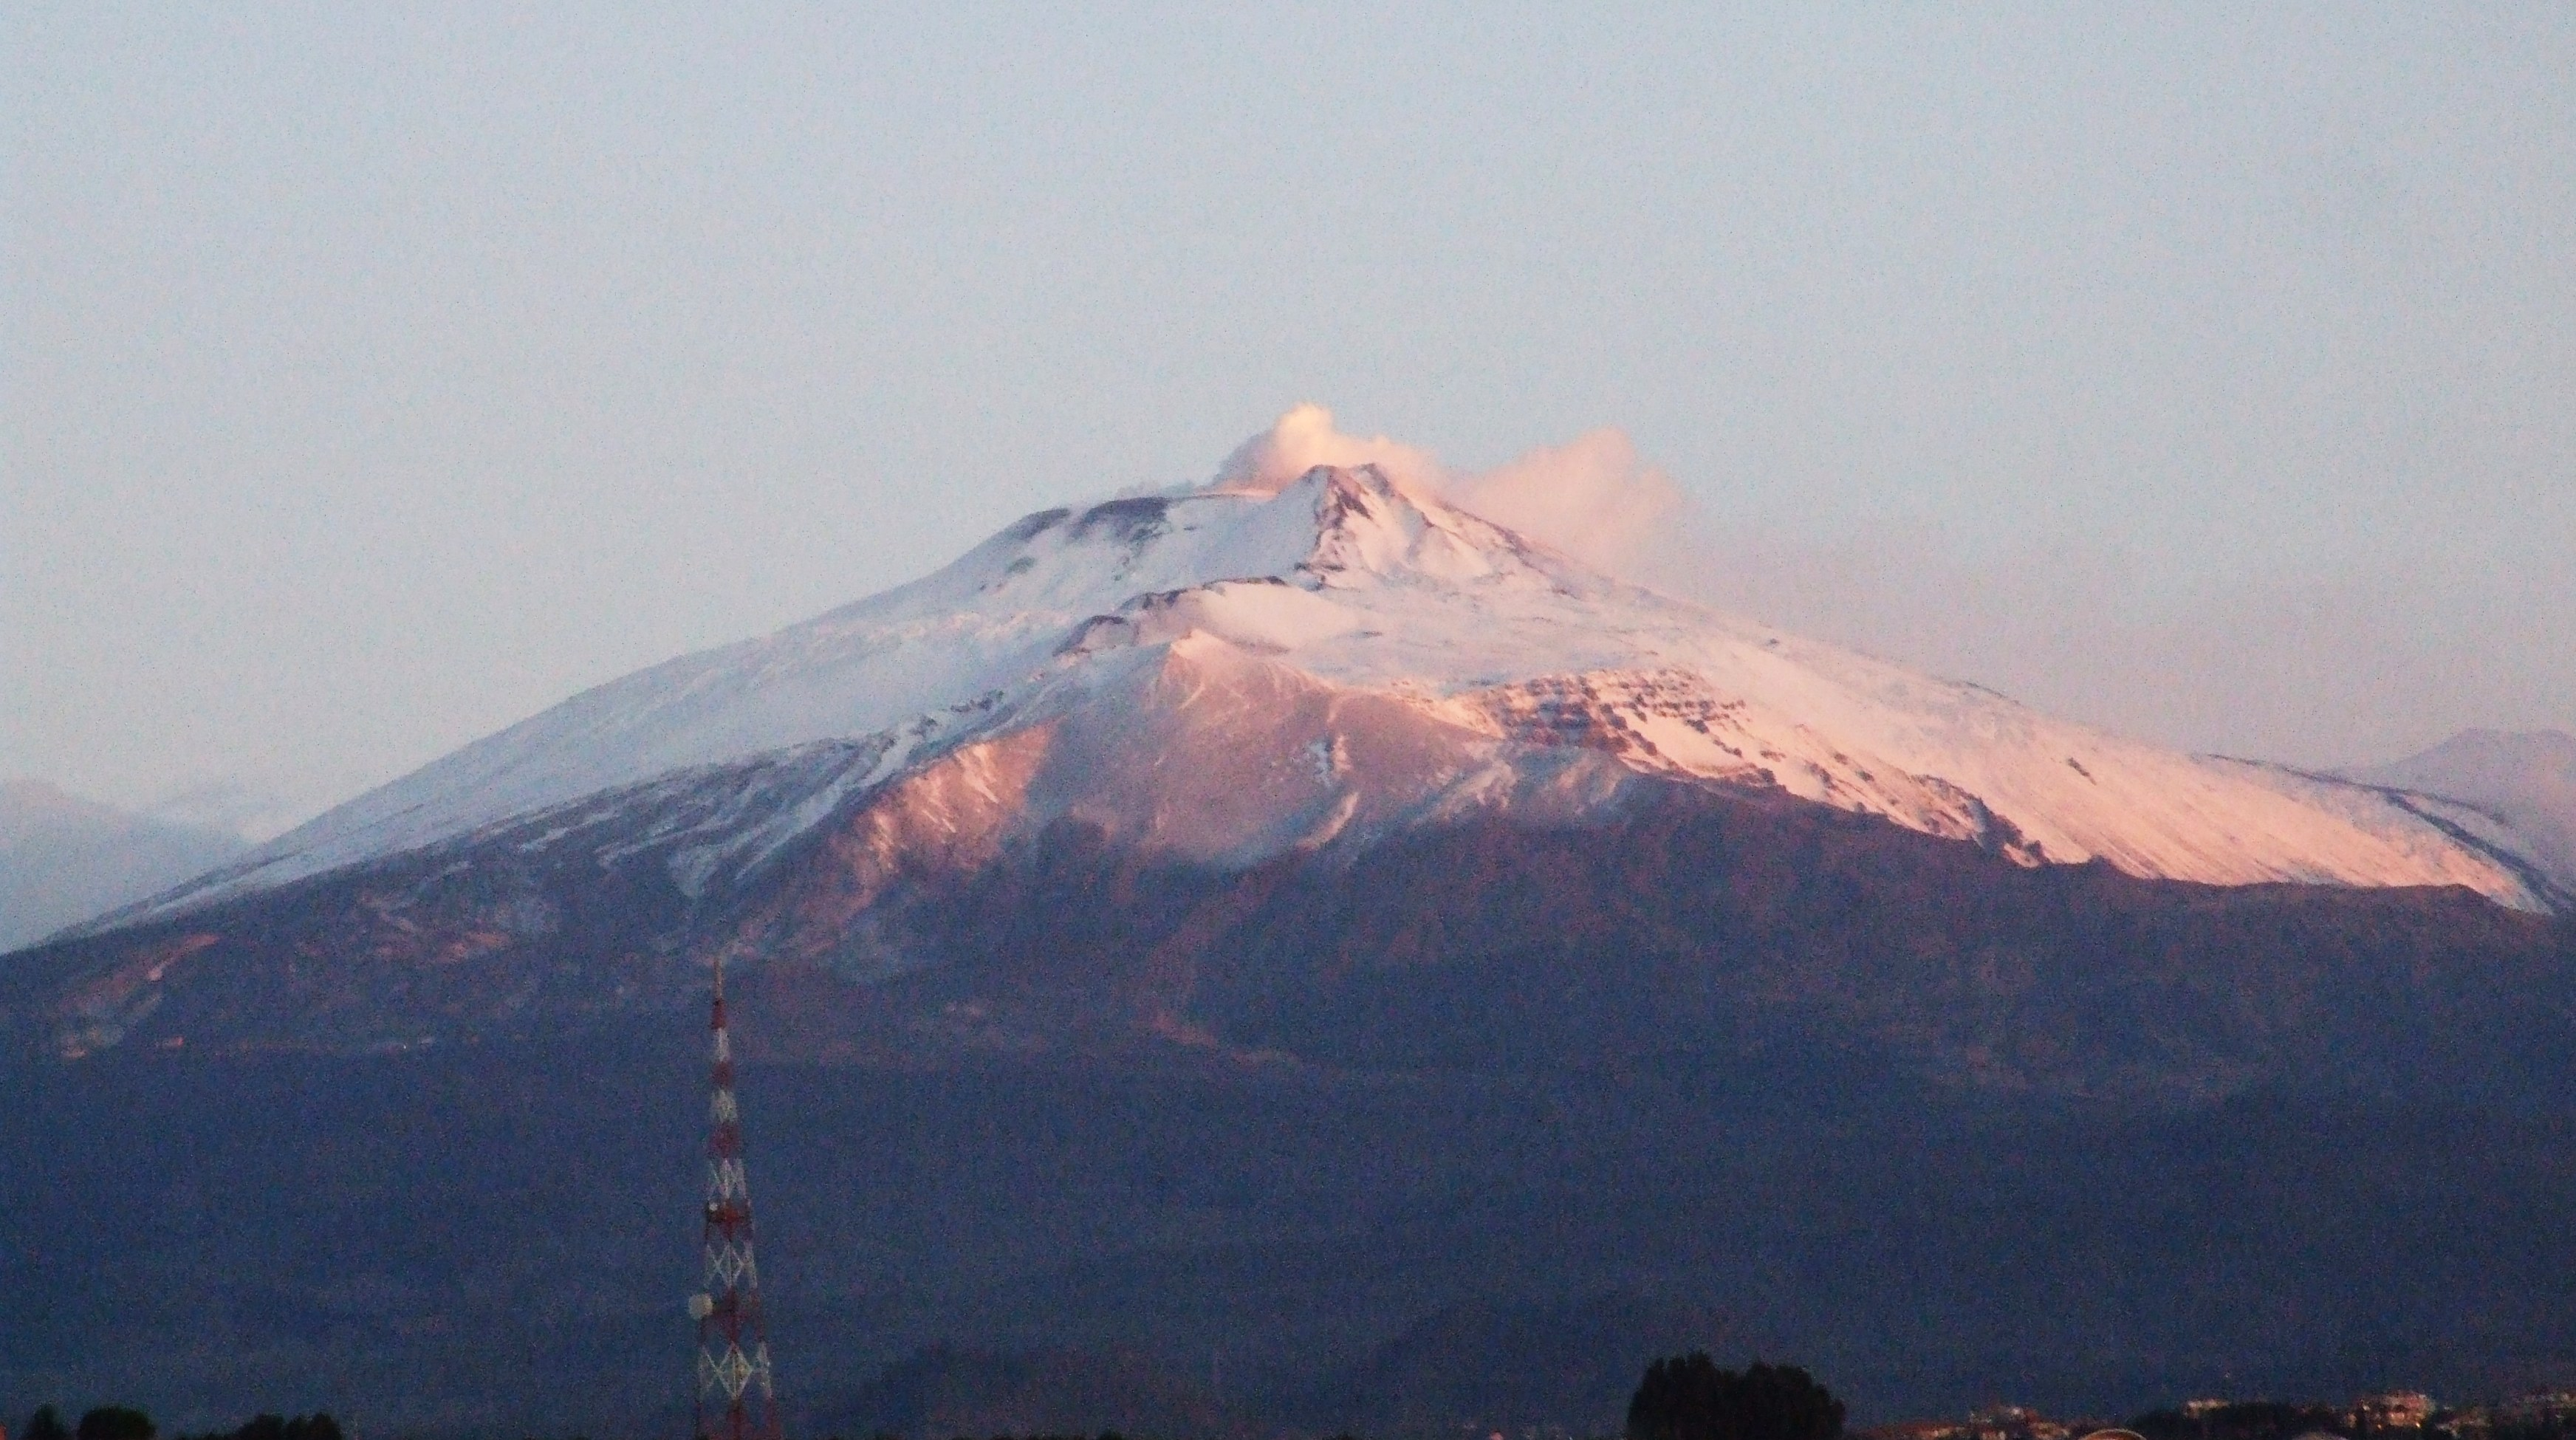 Etna volcano-sicily-italy - creative commons by gnuckx photo